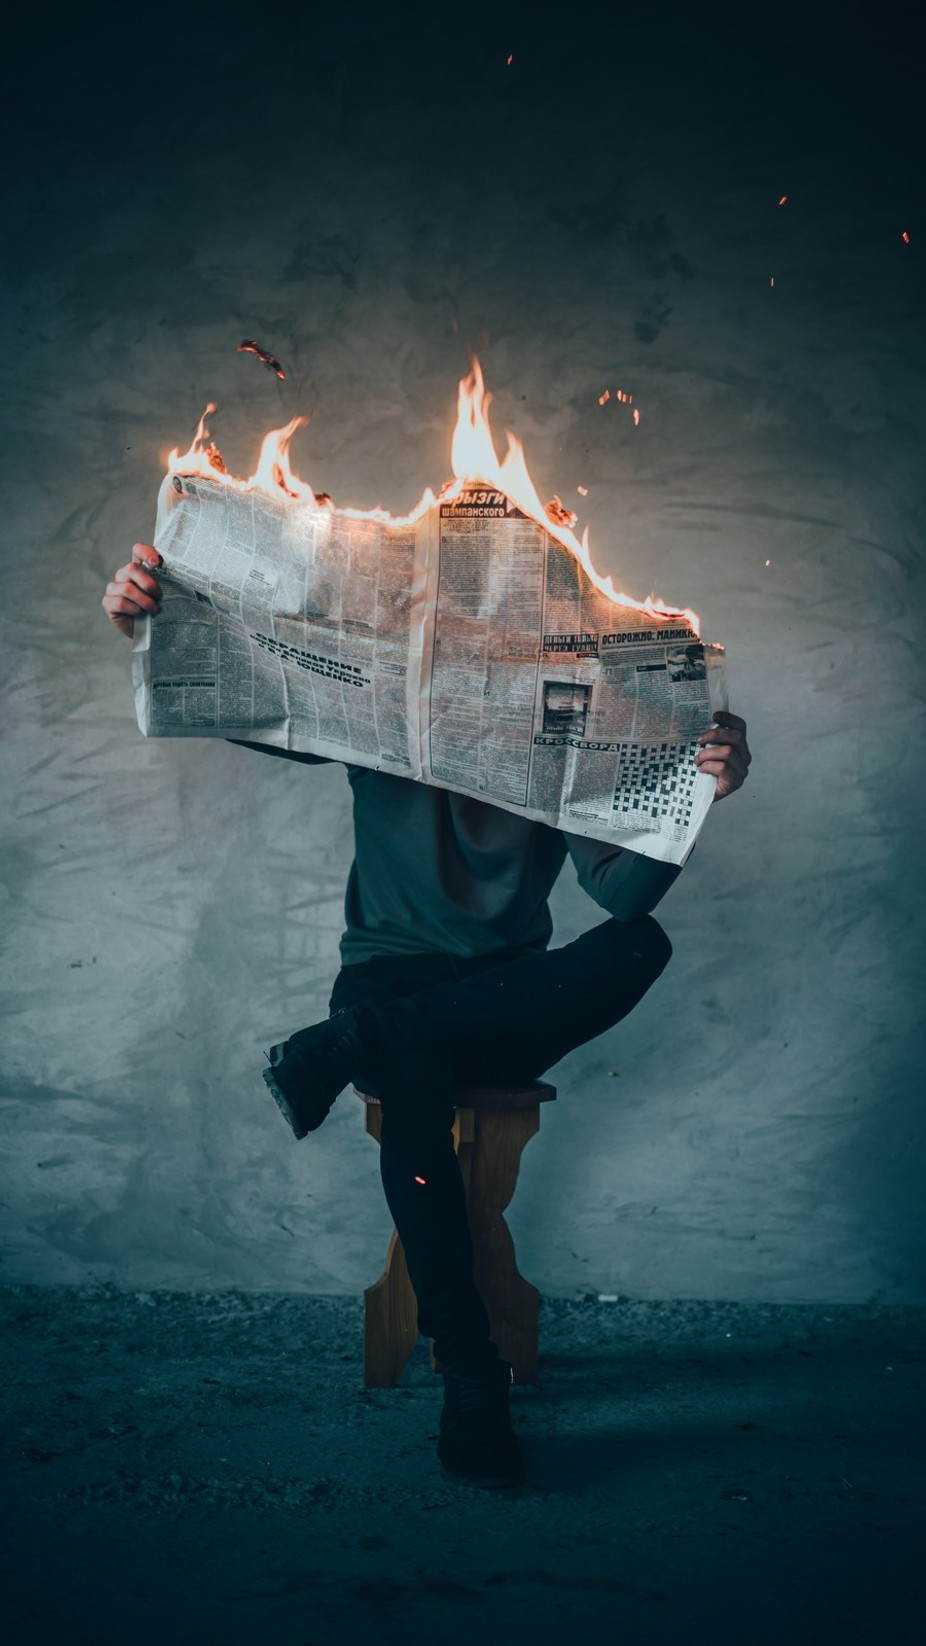 Fire News by Elijah_sad - Shooting Fire Photo Contest